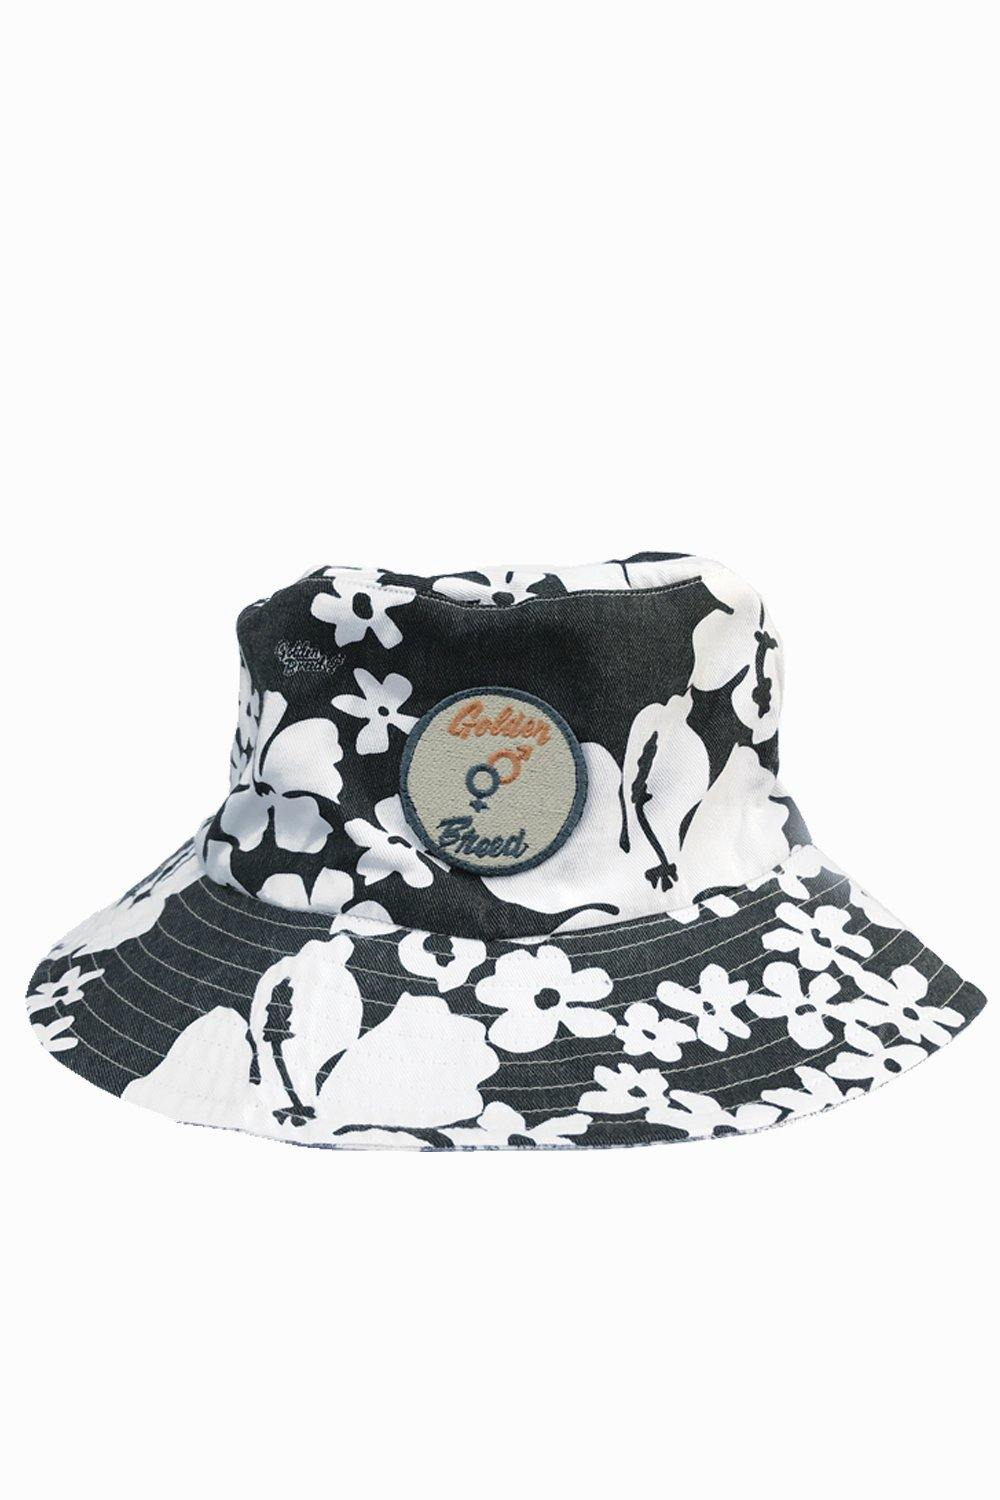 BARKLY FLORAL BUCKET HAT - Mid Navy